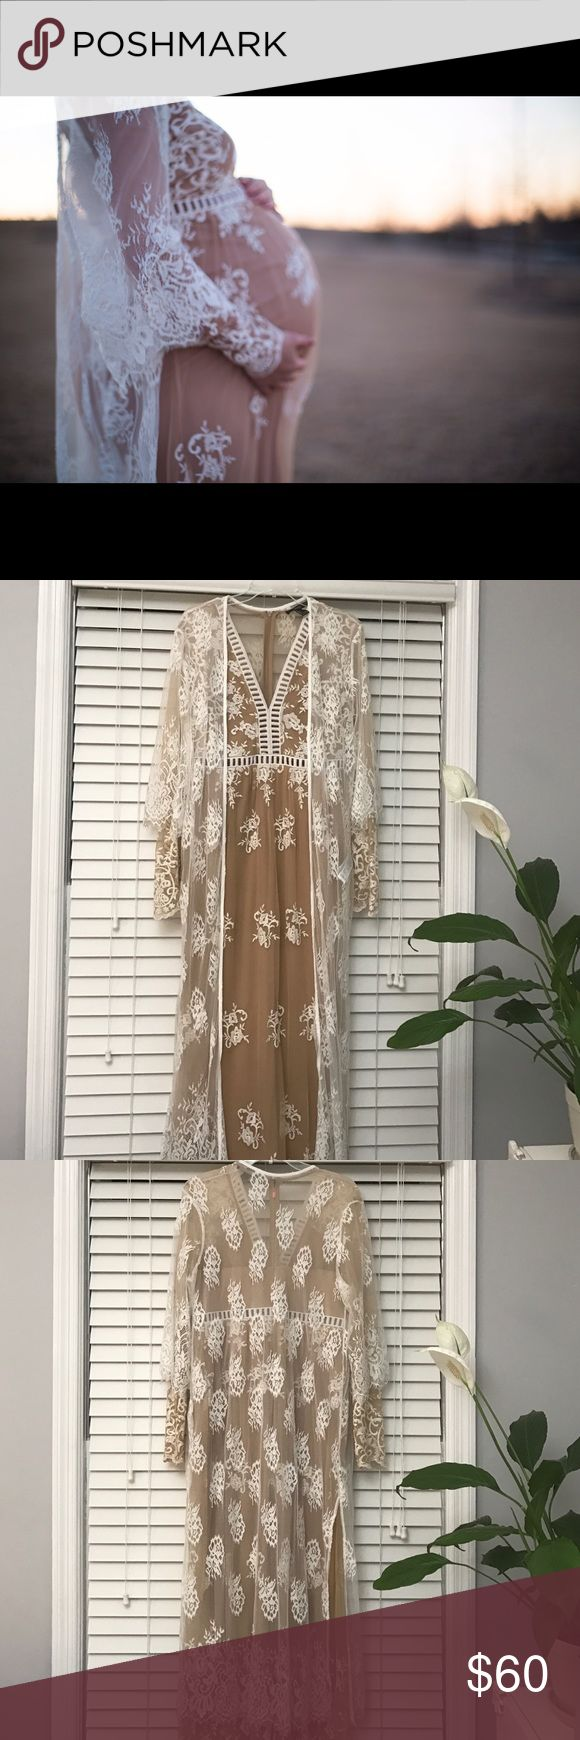 Maternity gown + lace kimono Beautiful nude and white gown with complimenting lace kimono only worn once! Forever 21 Dresses Maxi